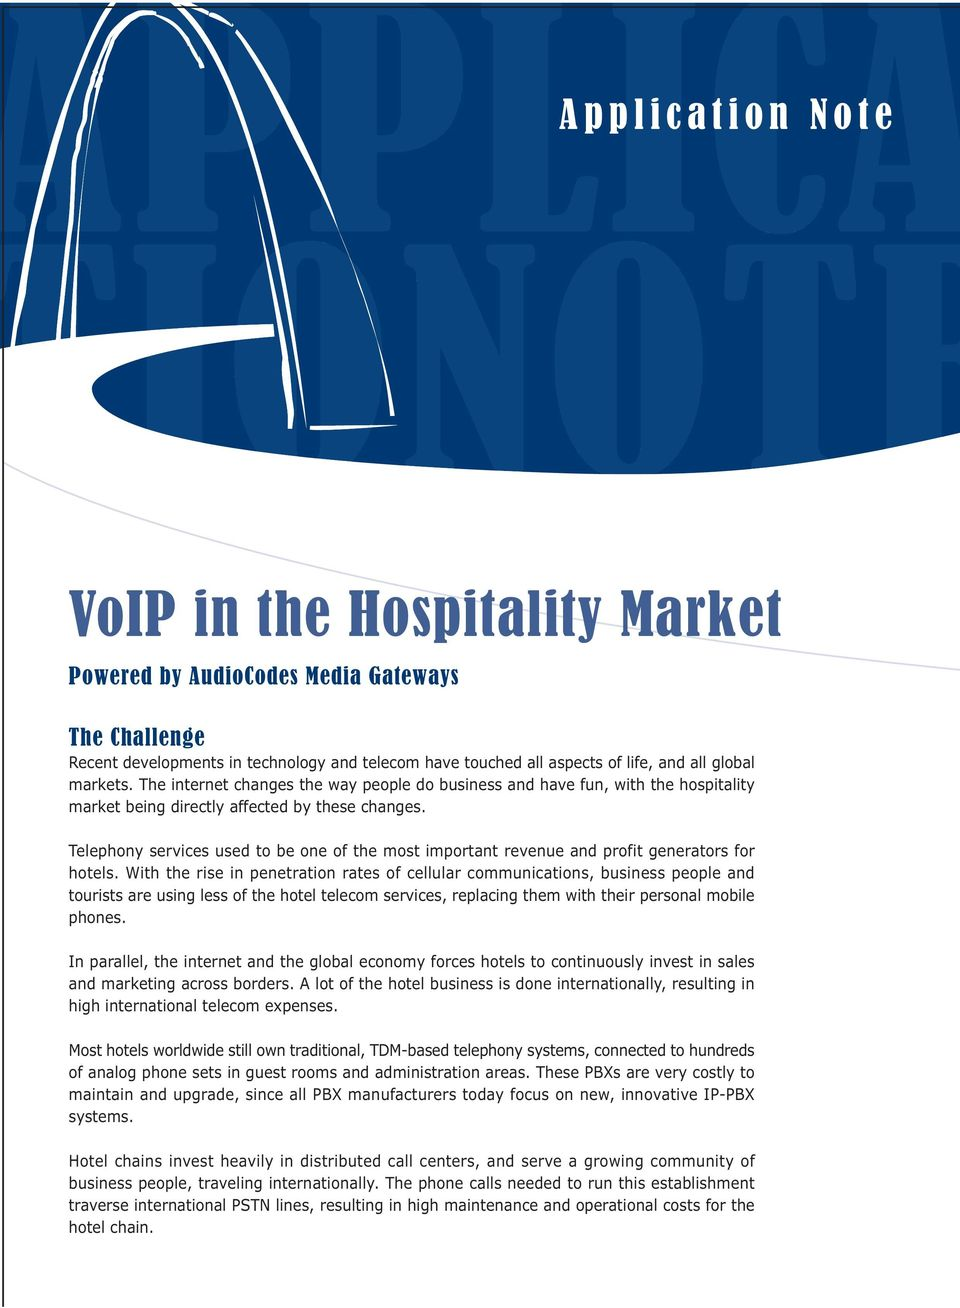 Telephony services used to be one of the most important revenue and profit generators for hotels.